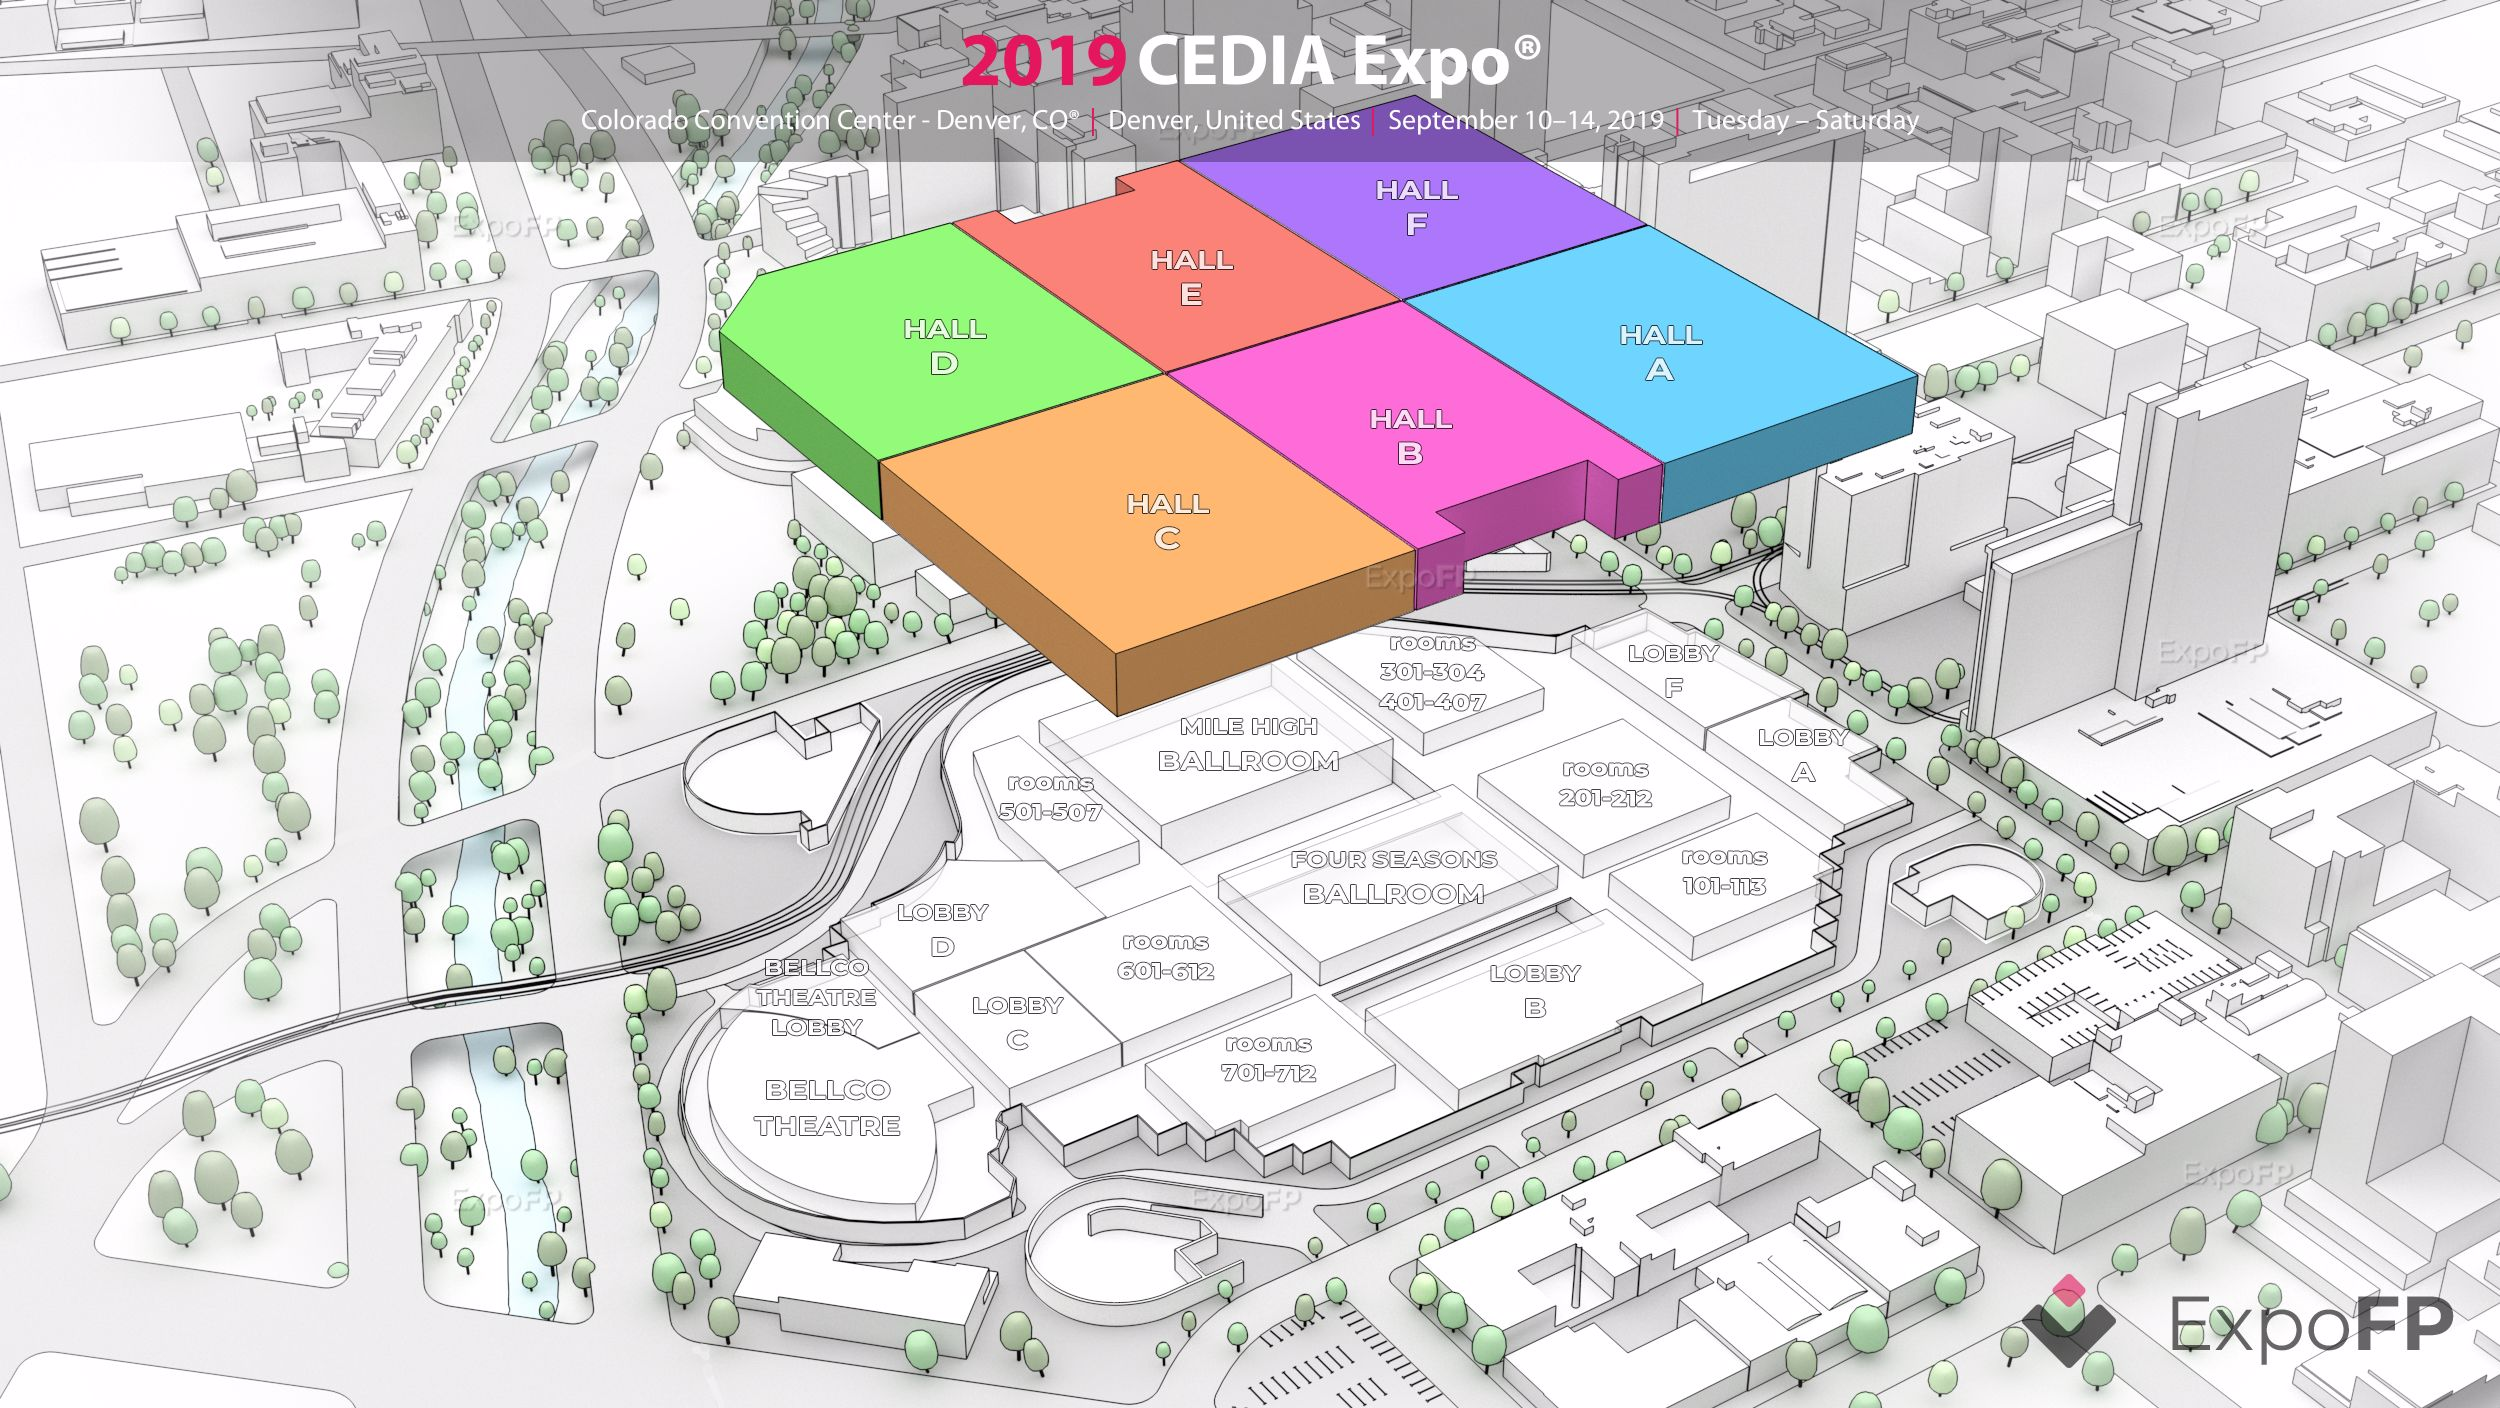 CEDIA Expo 2019 in Colorado on